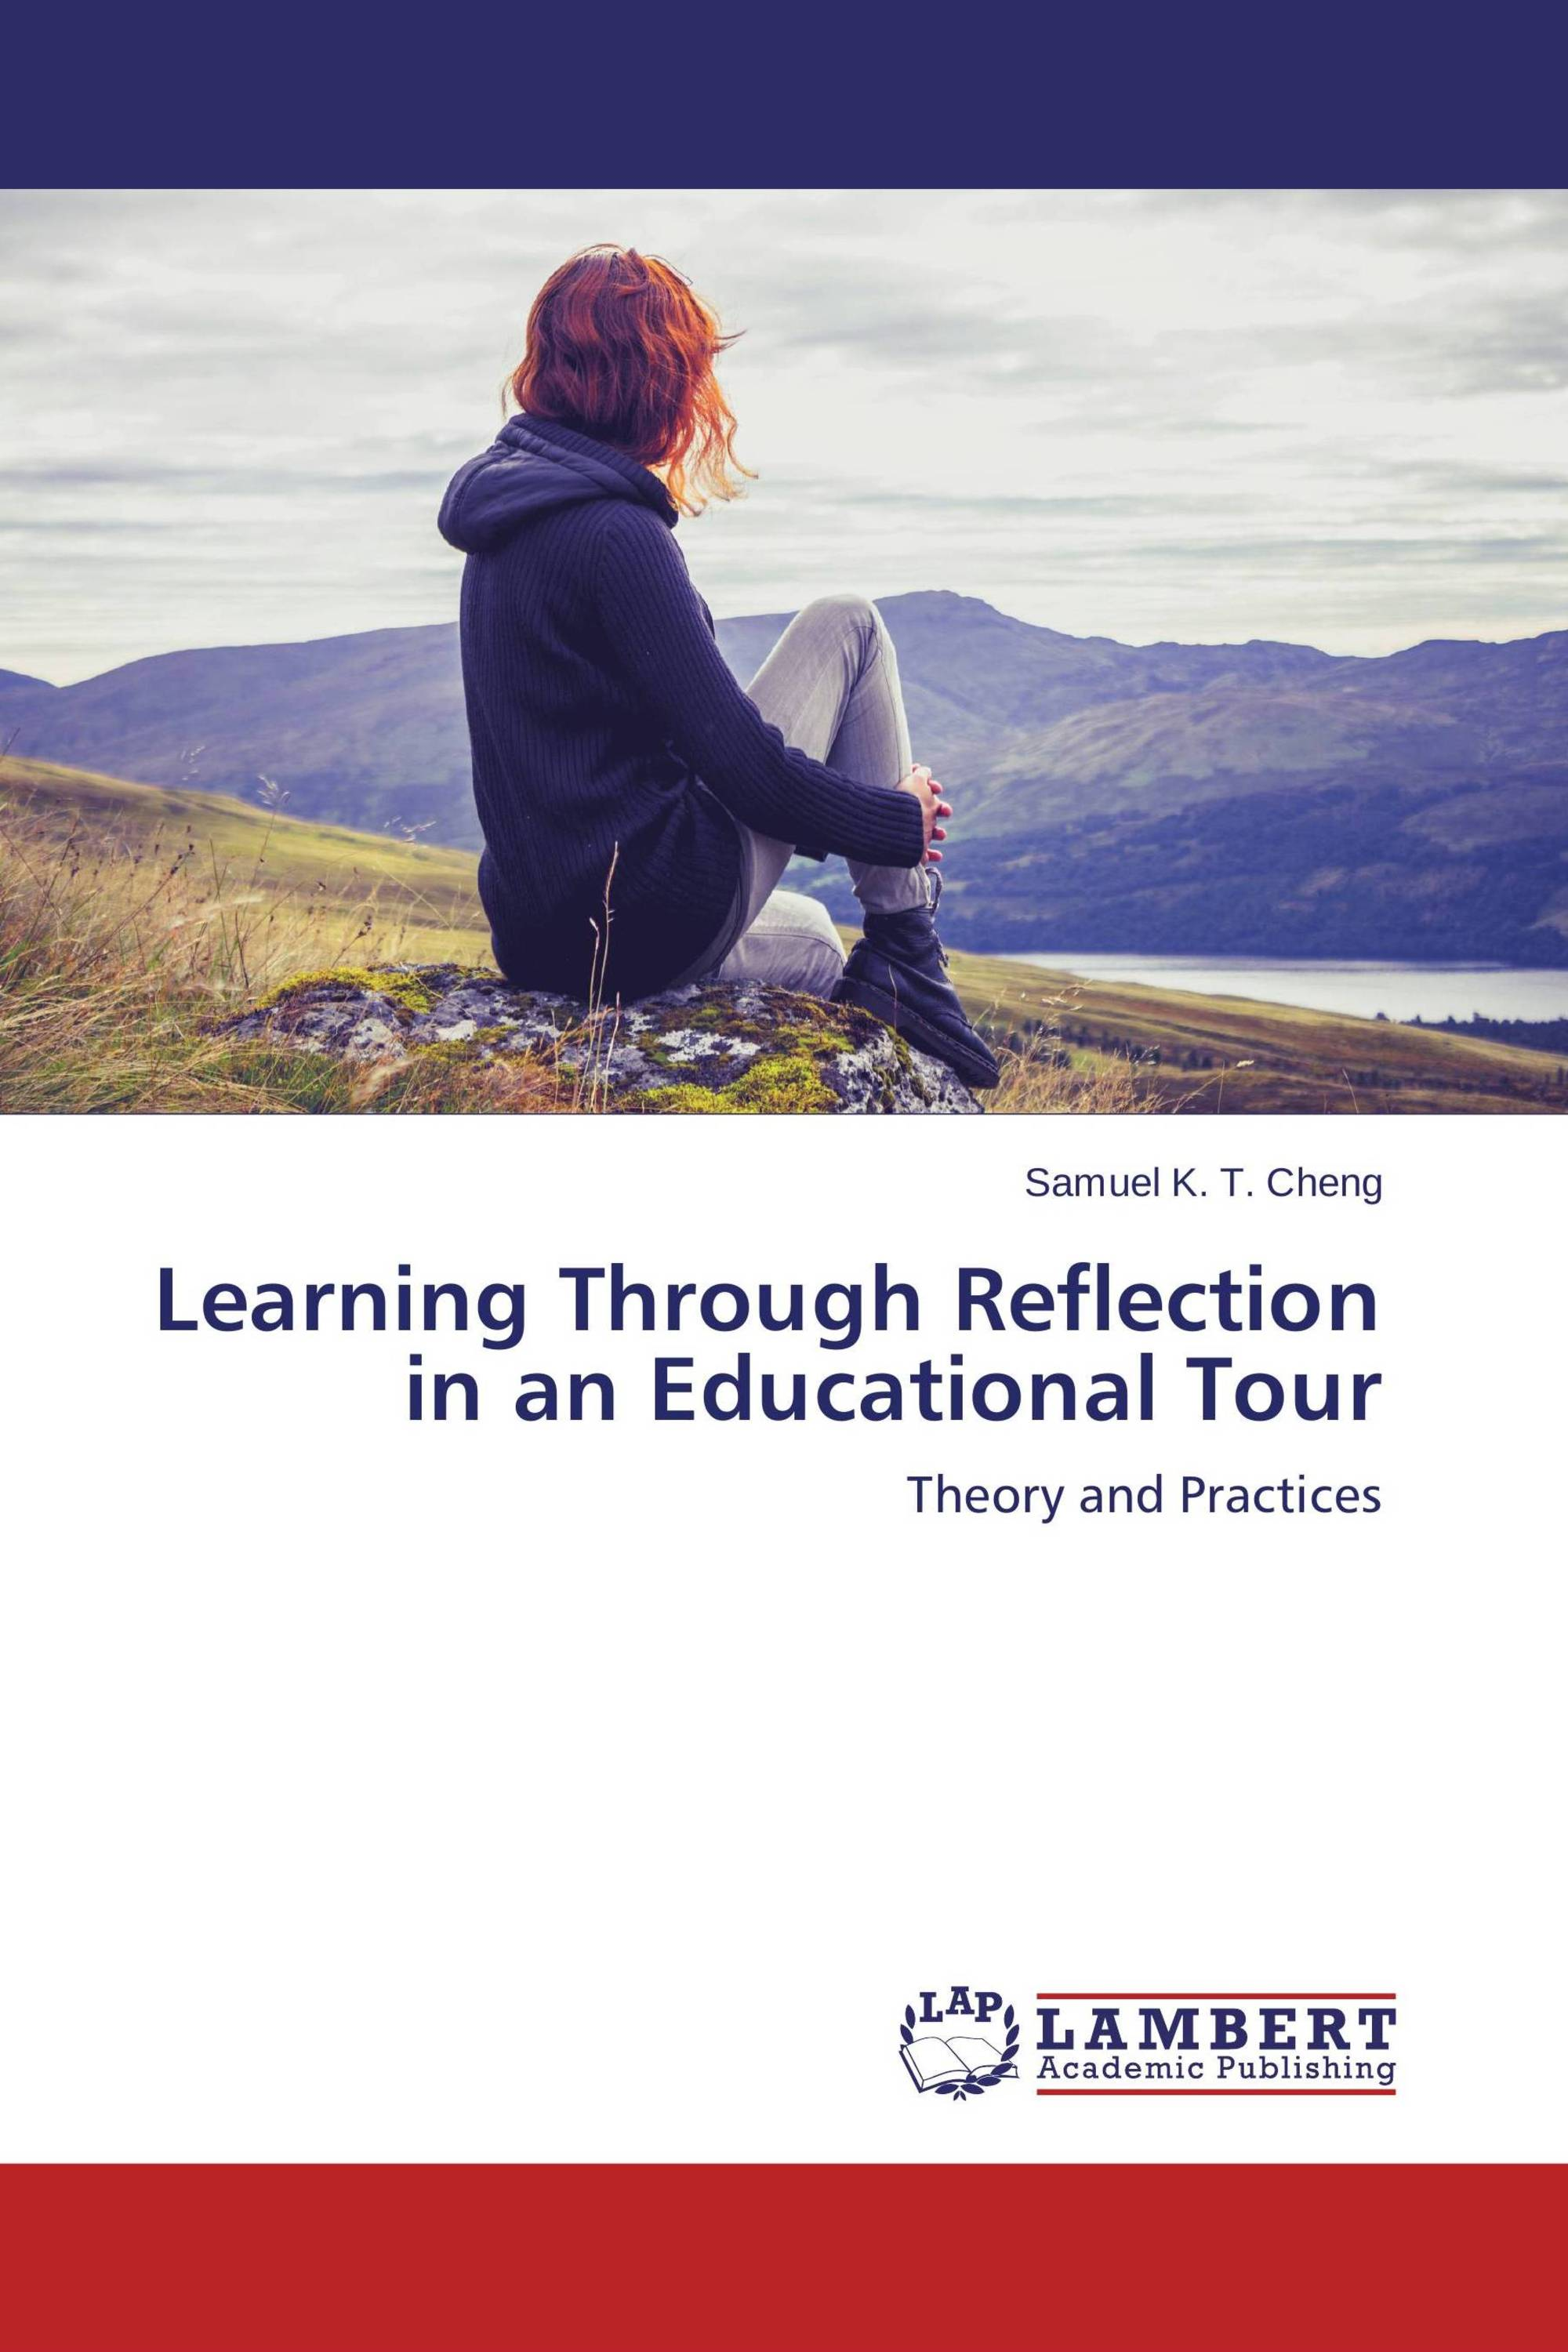 reflection paper about educational tour